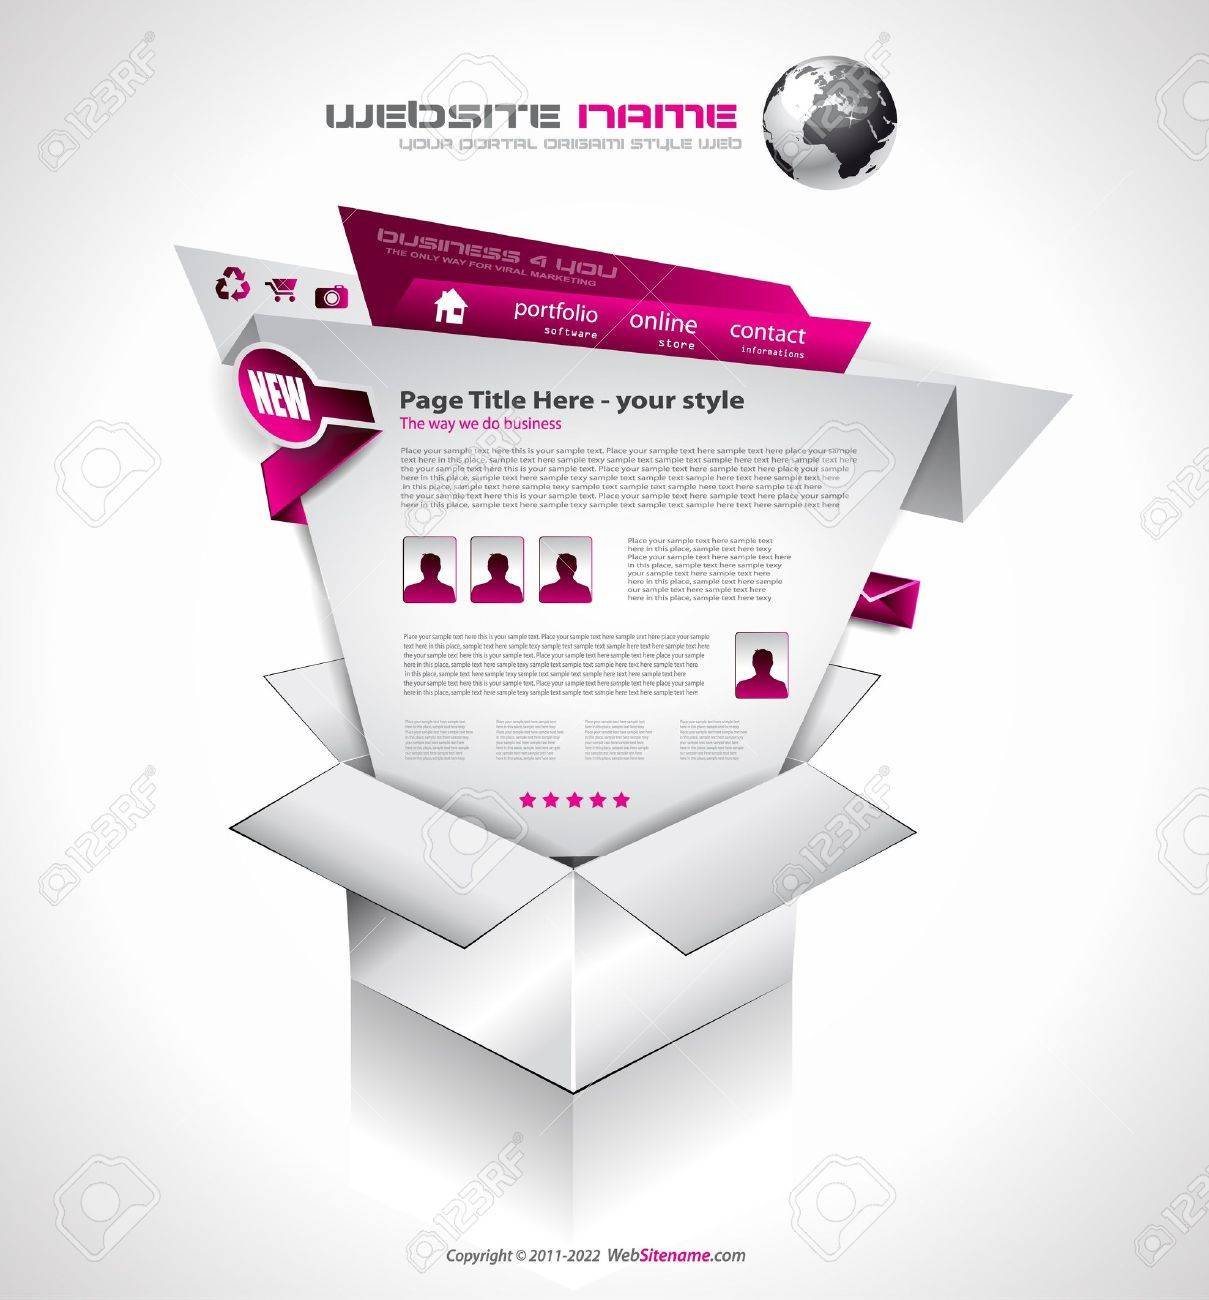 Complex Website Template - Elegant Design for Business Presentations. Template with a lot of design elements and infographics. Stock Vector - 12324017